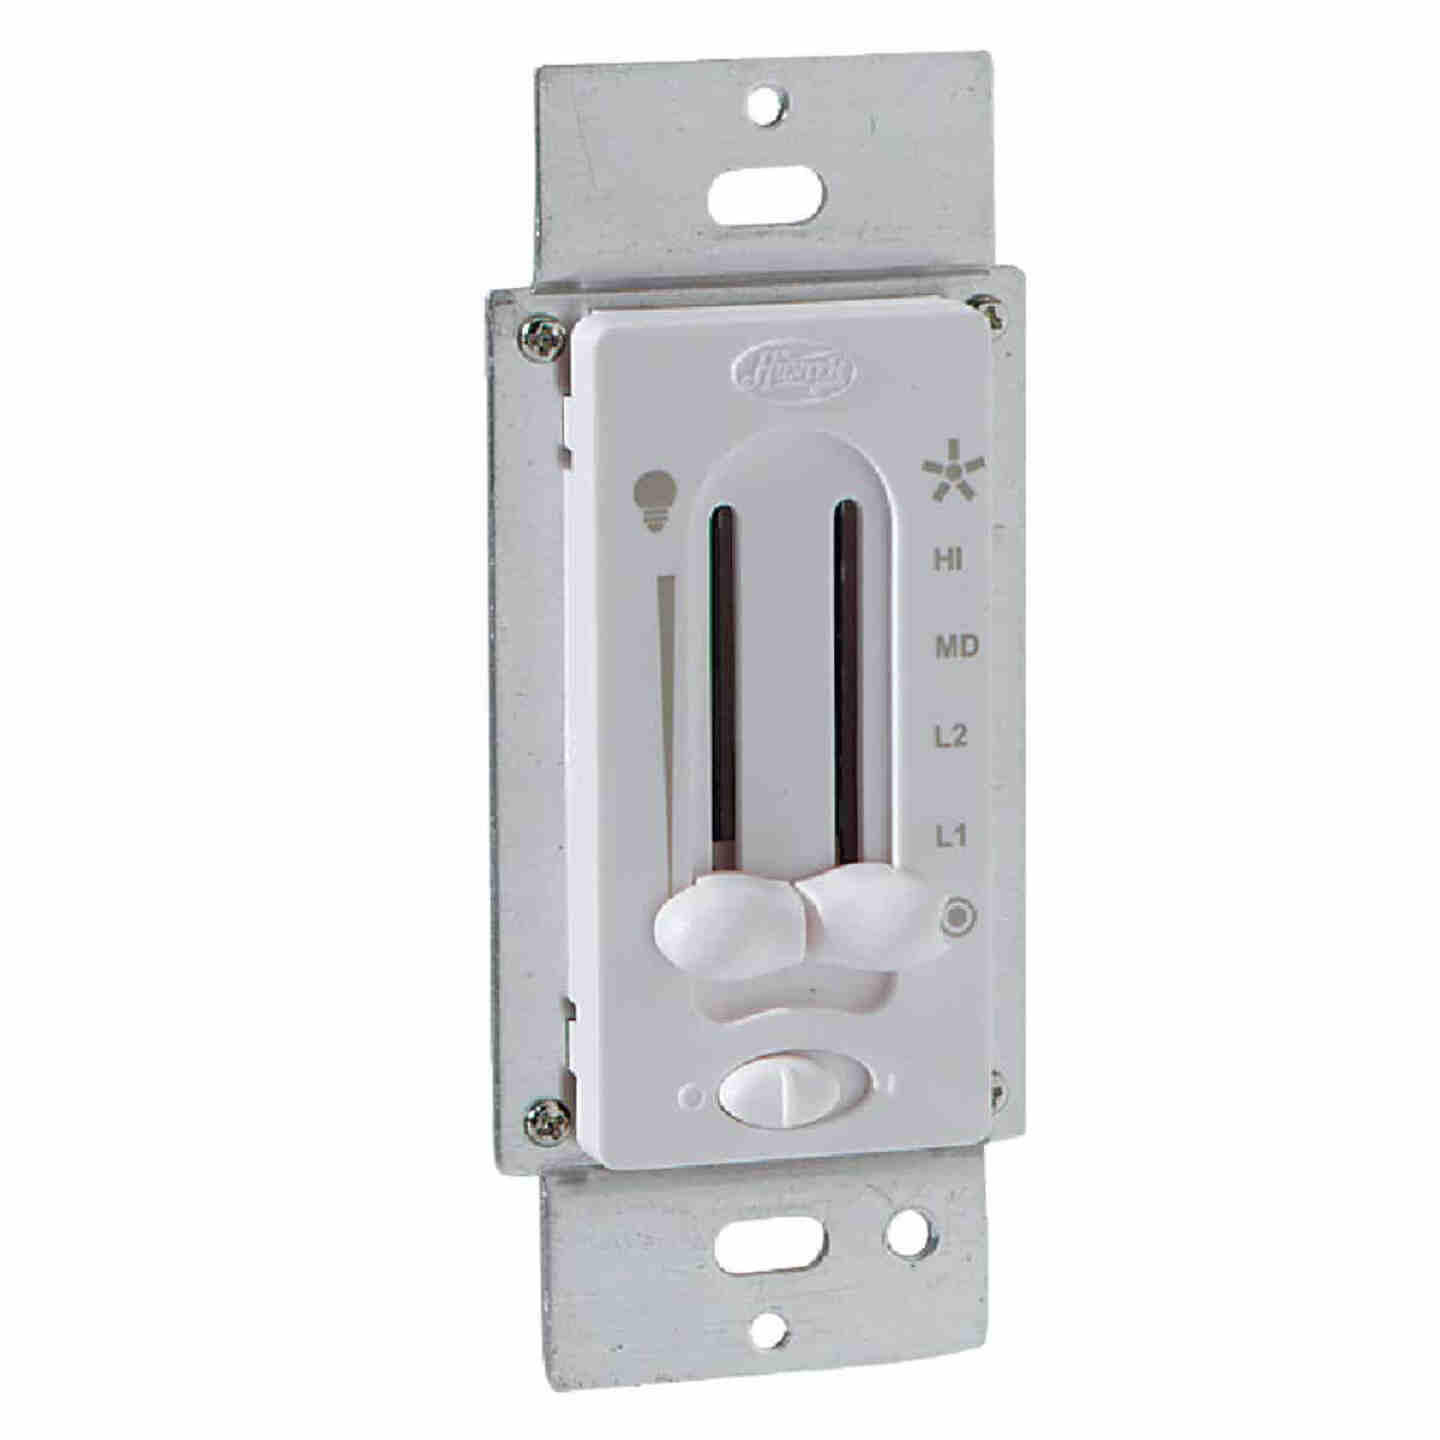 Hunter White 4-Speed/Full Range Dimmer Dual Slide Fan Control Switch Image 1